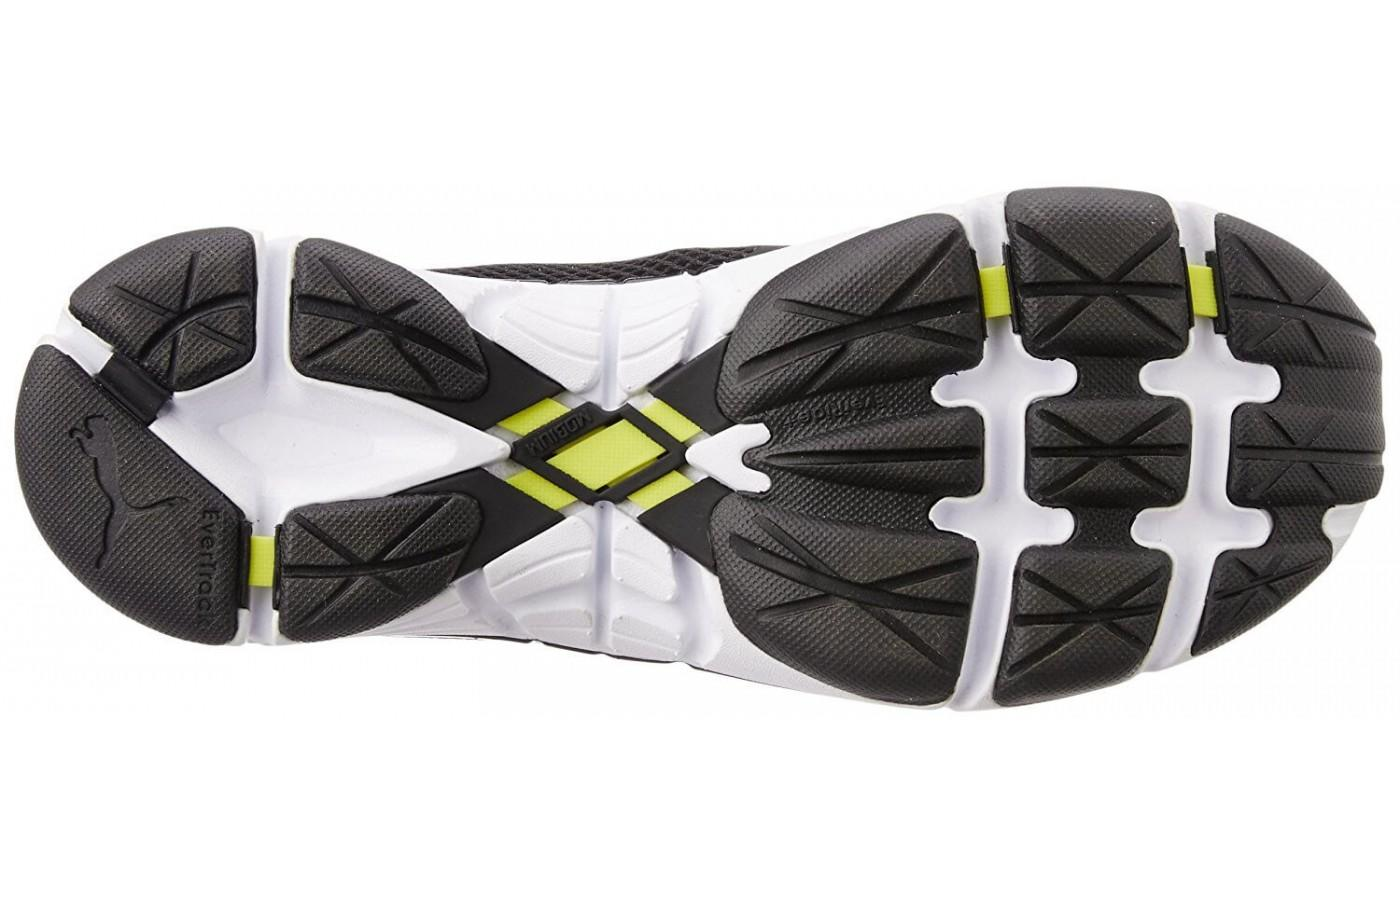 the Puma Mobium Ride v2 features the Mobius Band, which adds a spring to each step